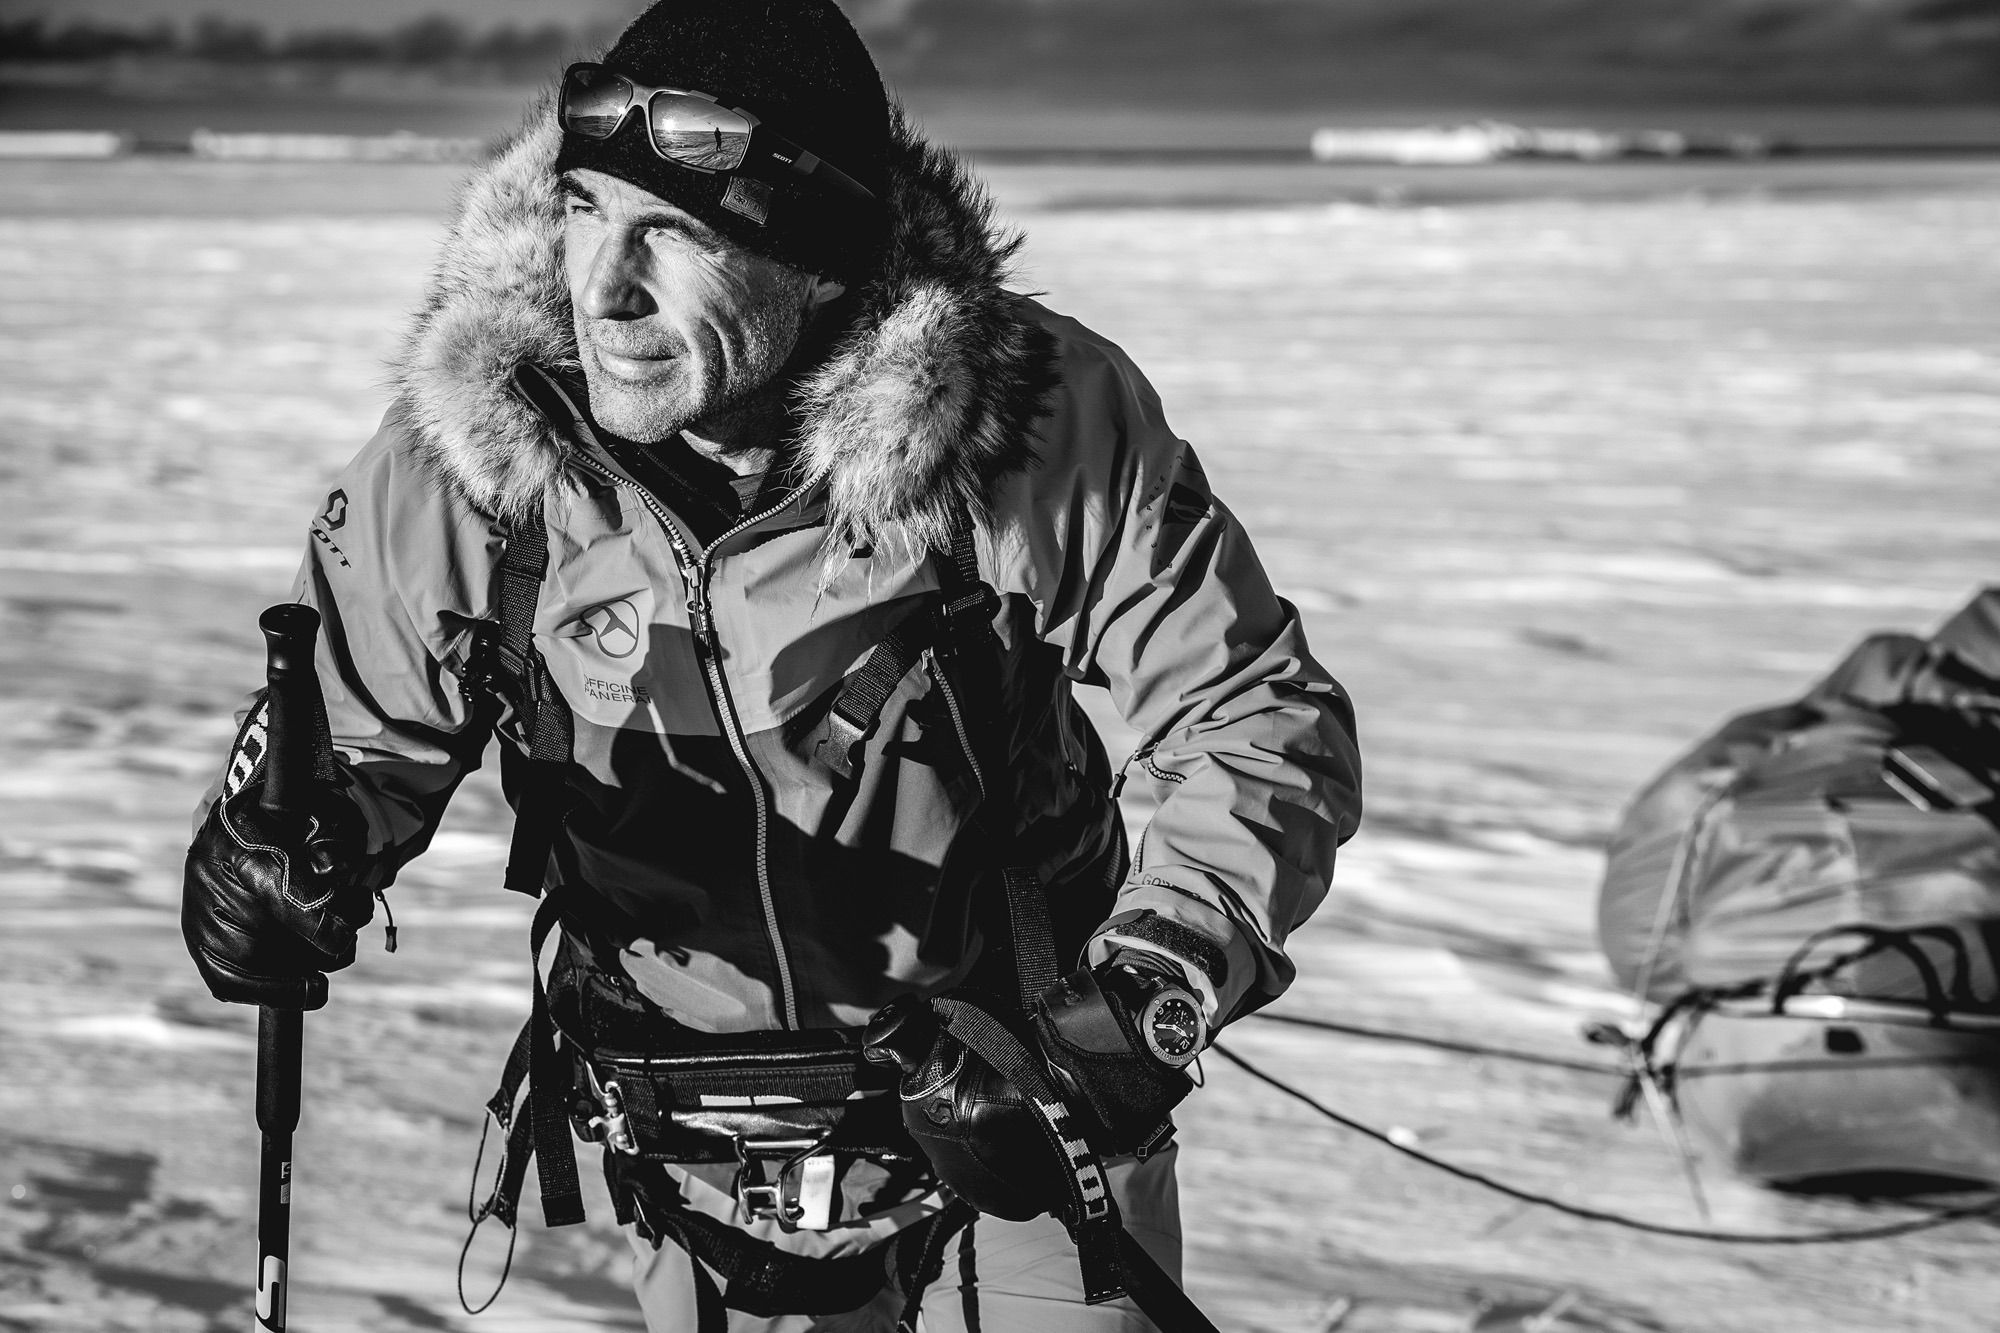 POLE2POLE expedition. Pangaea sailing in Antarctica.Mike getting ready for his Antarctica expedition. Mike started his crossing. Dronning maud land. Kameneva bukta ( buhta). Panerai watch .